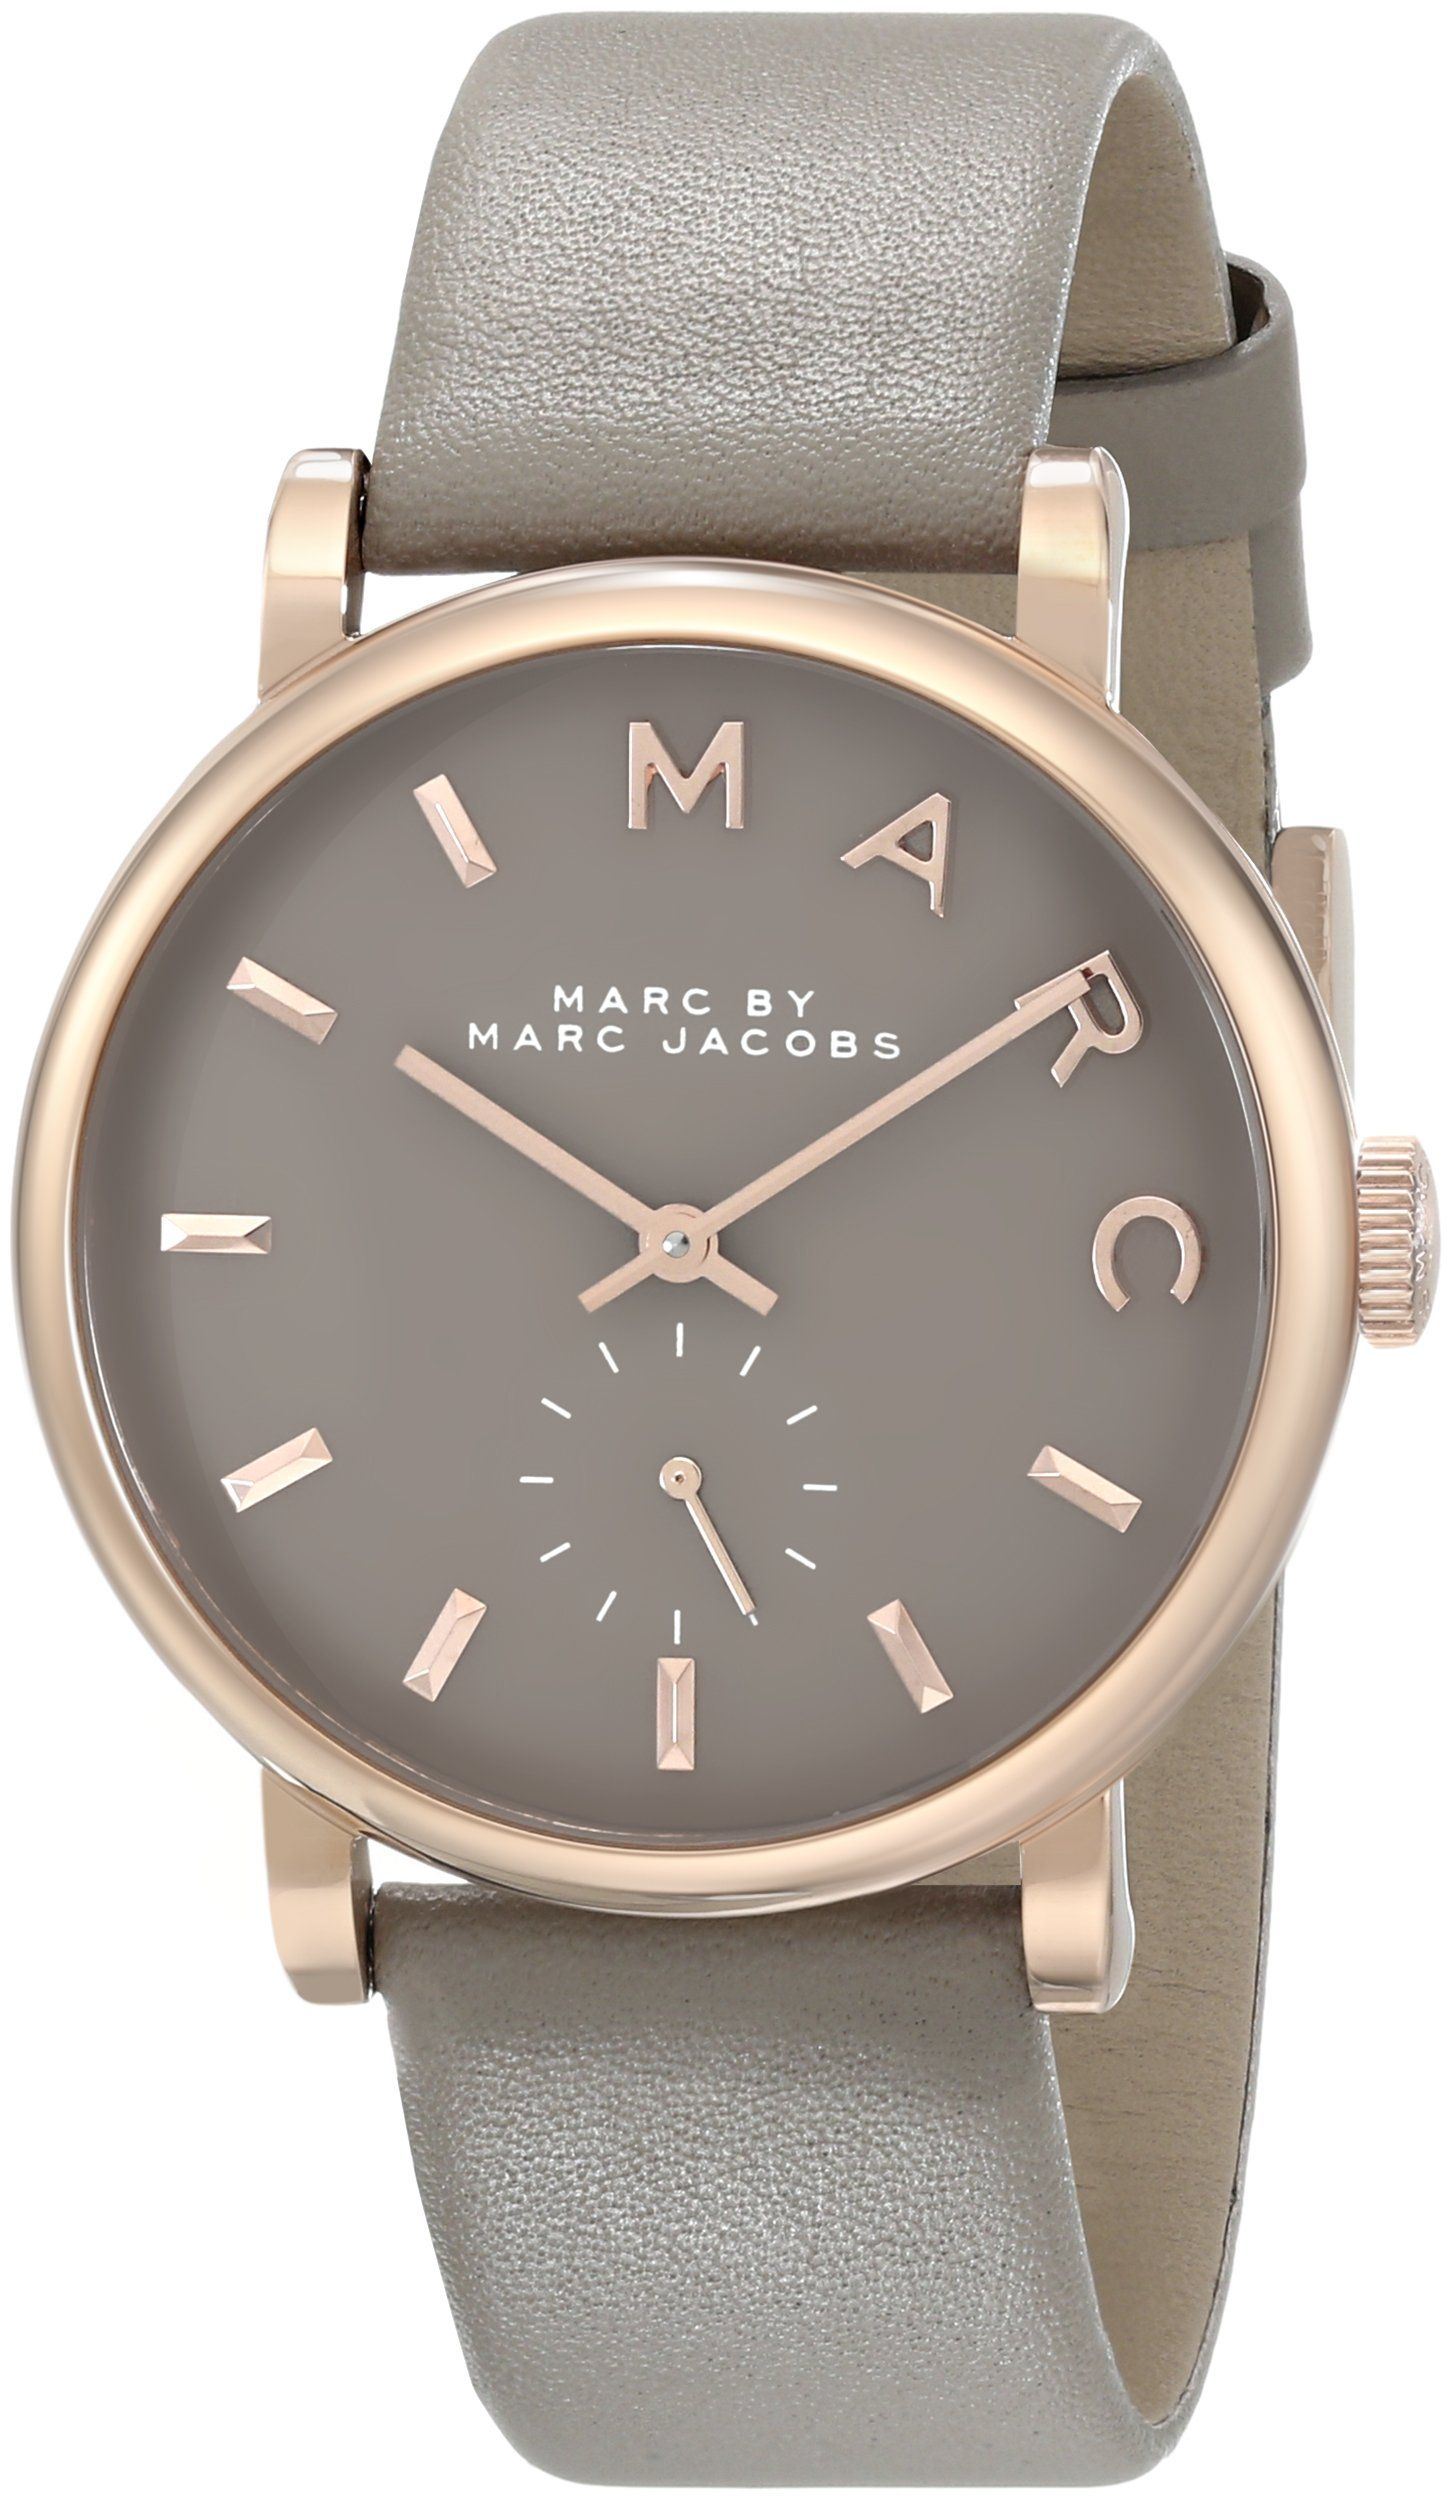 Greylady S Hearth February 2014: Marc By Marc Jacobs Women's MBM1266 Baker Rose-Tone